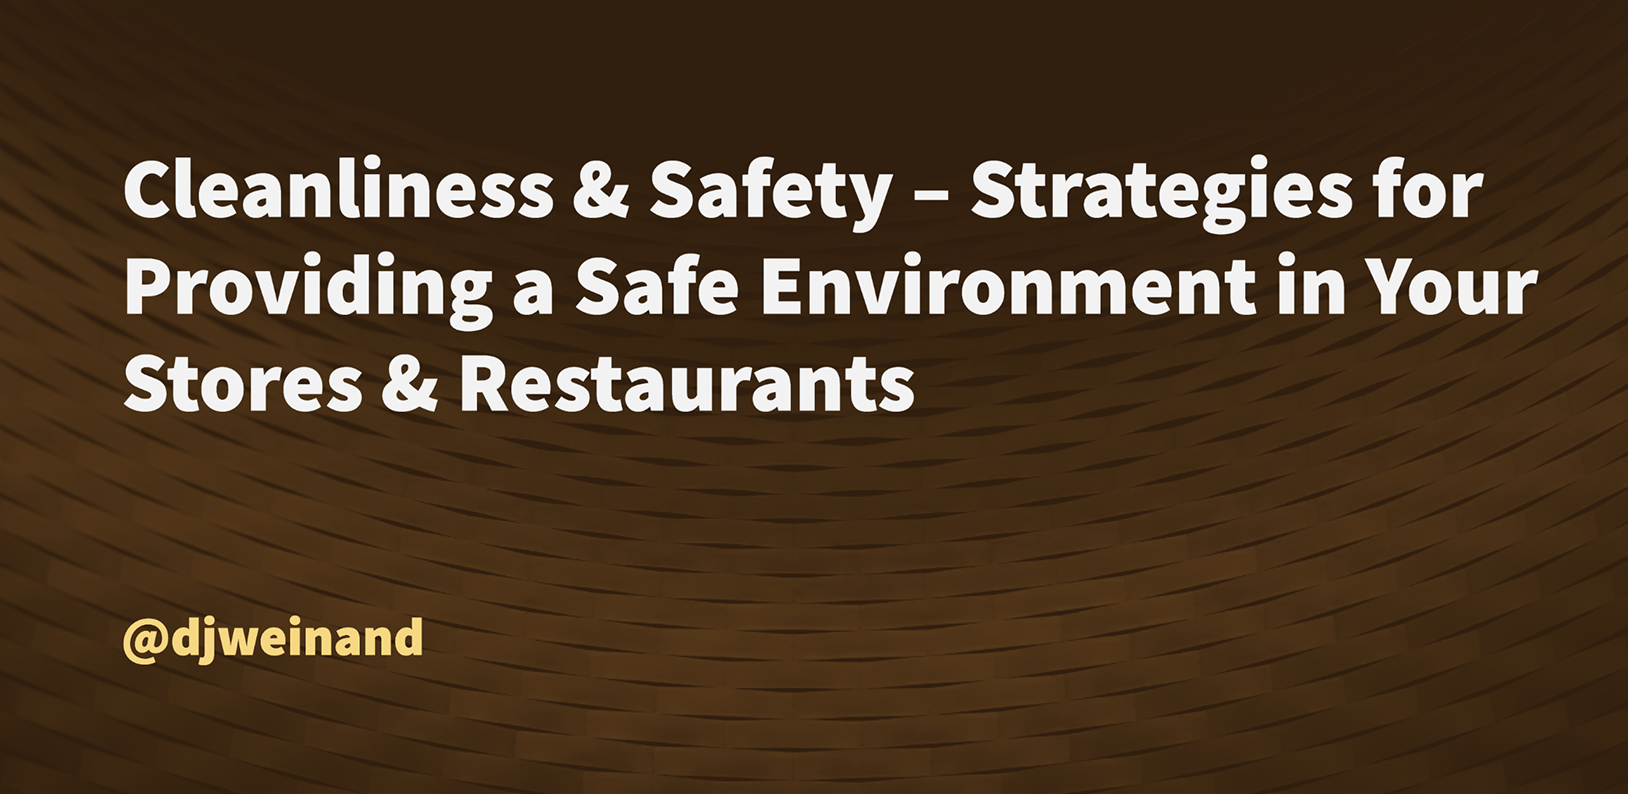 Cleanliness & Safety – Strategies for Providing a Safe Environment in Your Stores & Restaurants